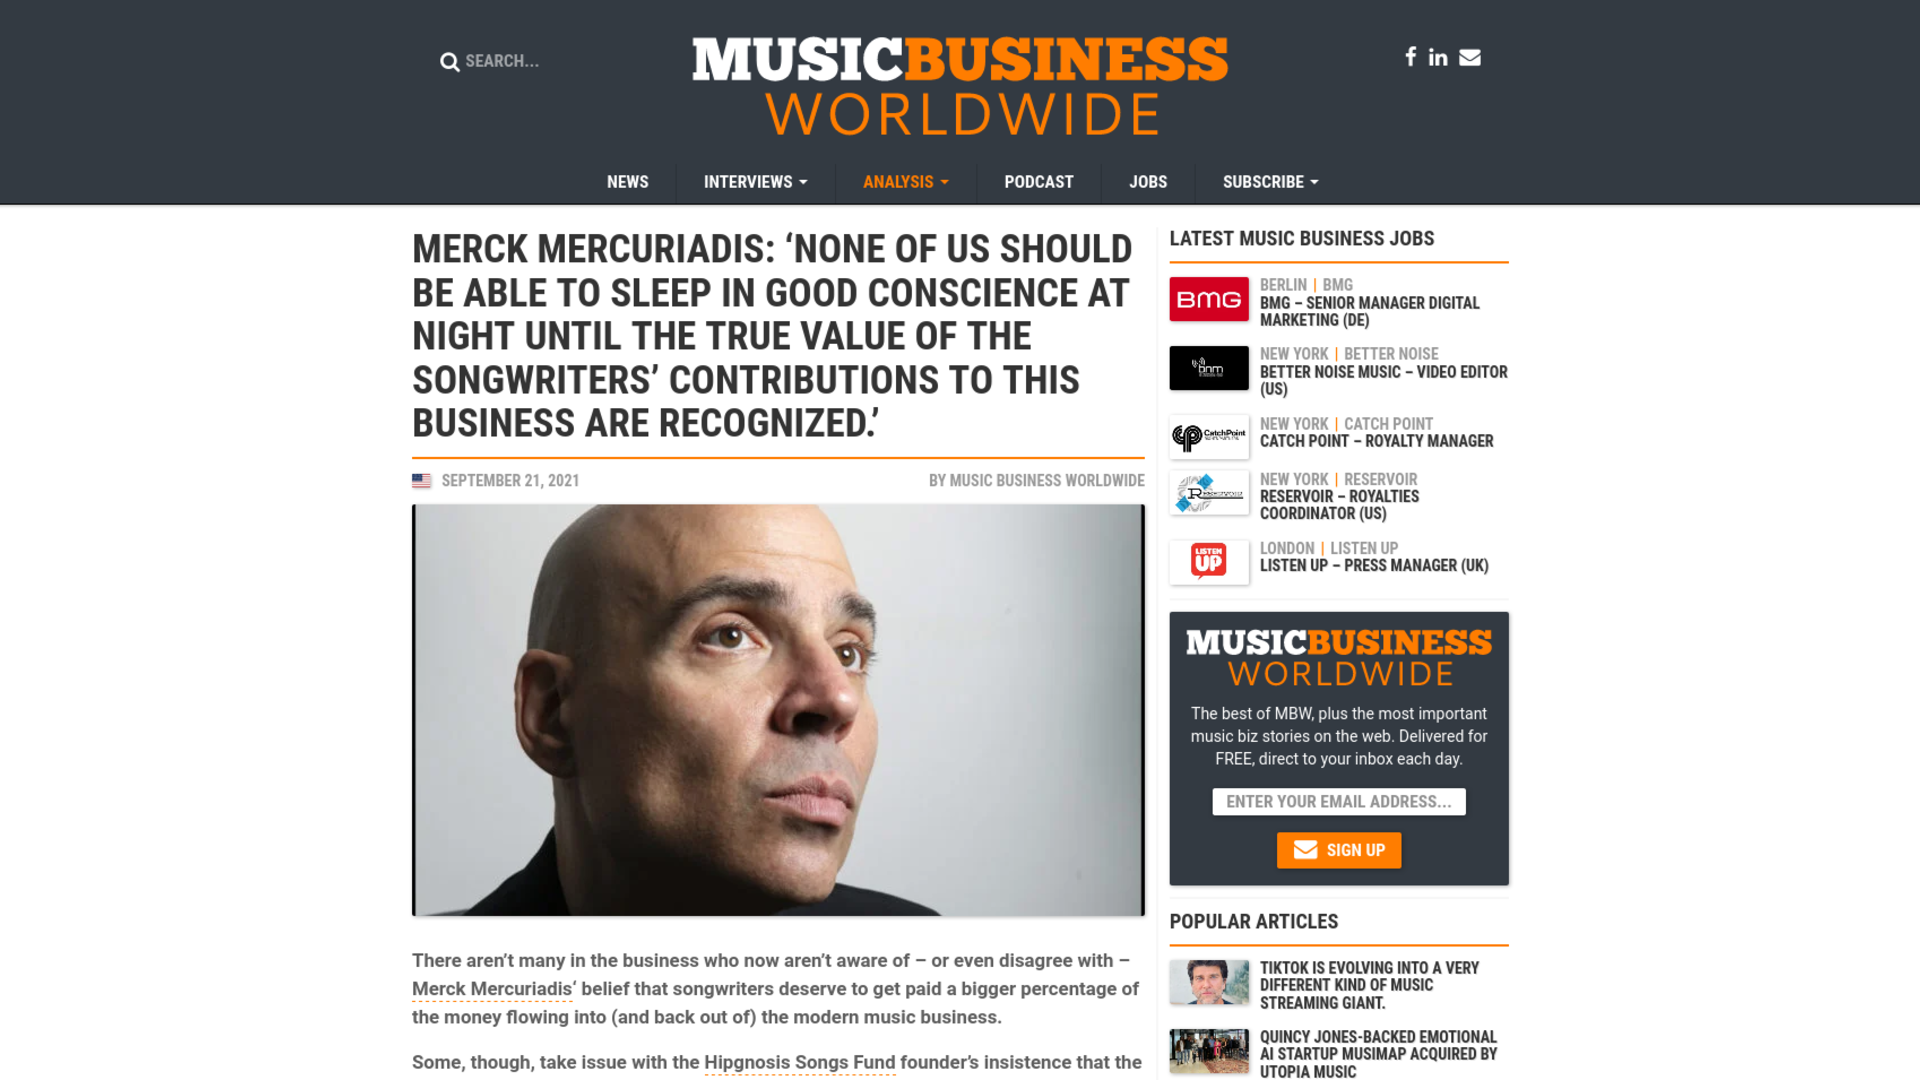 Fairness Rocks News Merck Mercuriadis: 'None of us should be able to sleep in good conscience at night until the true value of the songwriters' contributions to this business are recognized.'